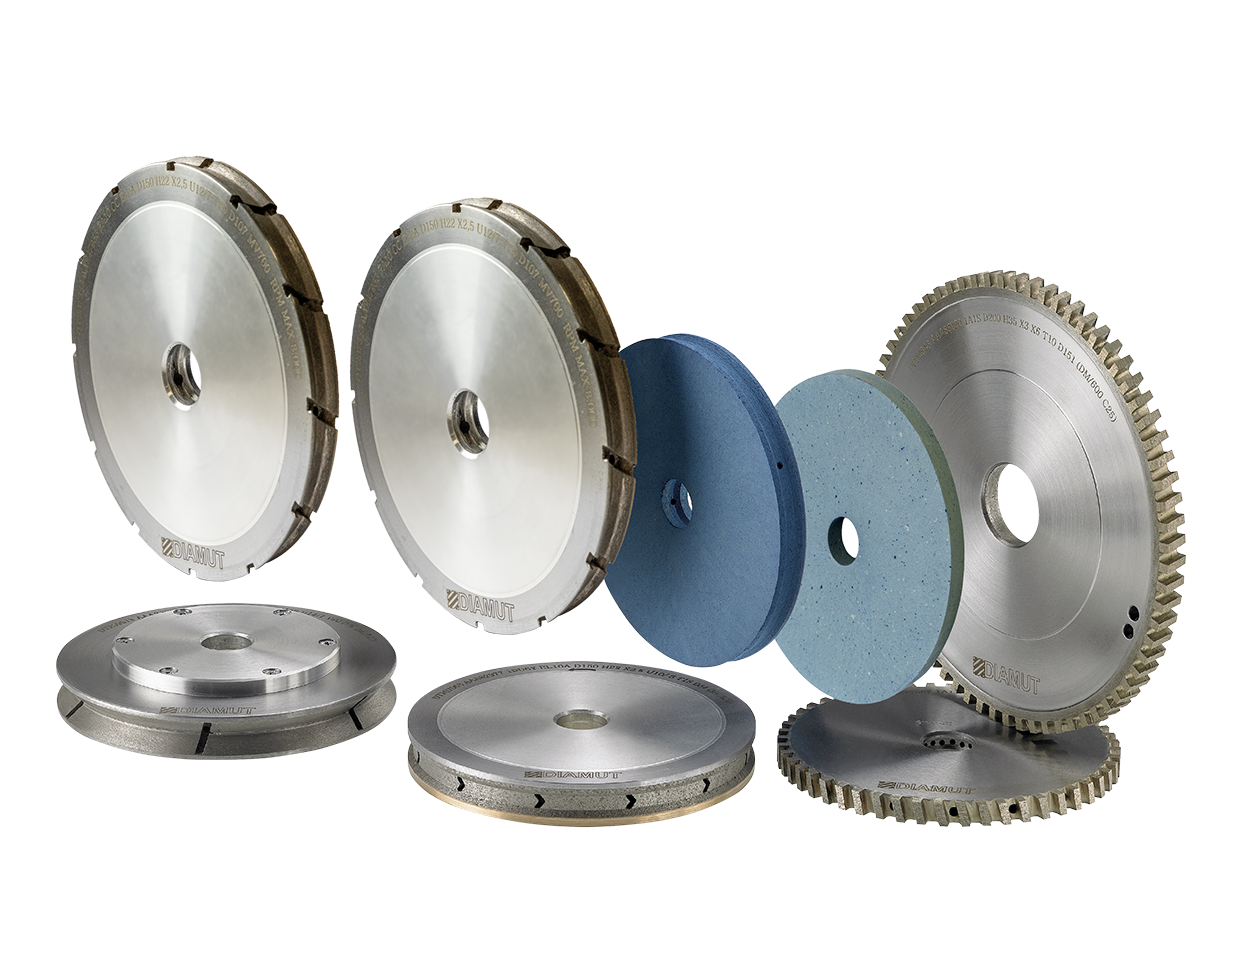 Peripheral grinding wheels and polishing wheels for vertical machines: Photo 1